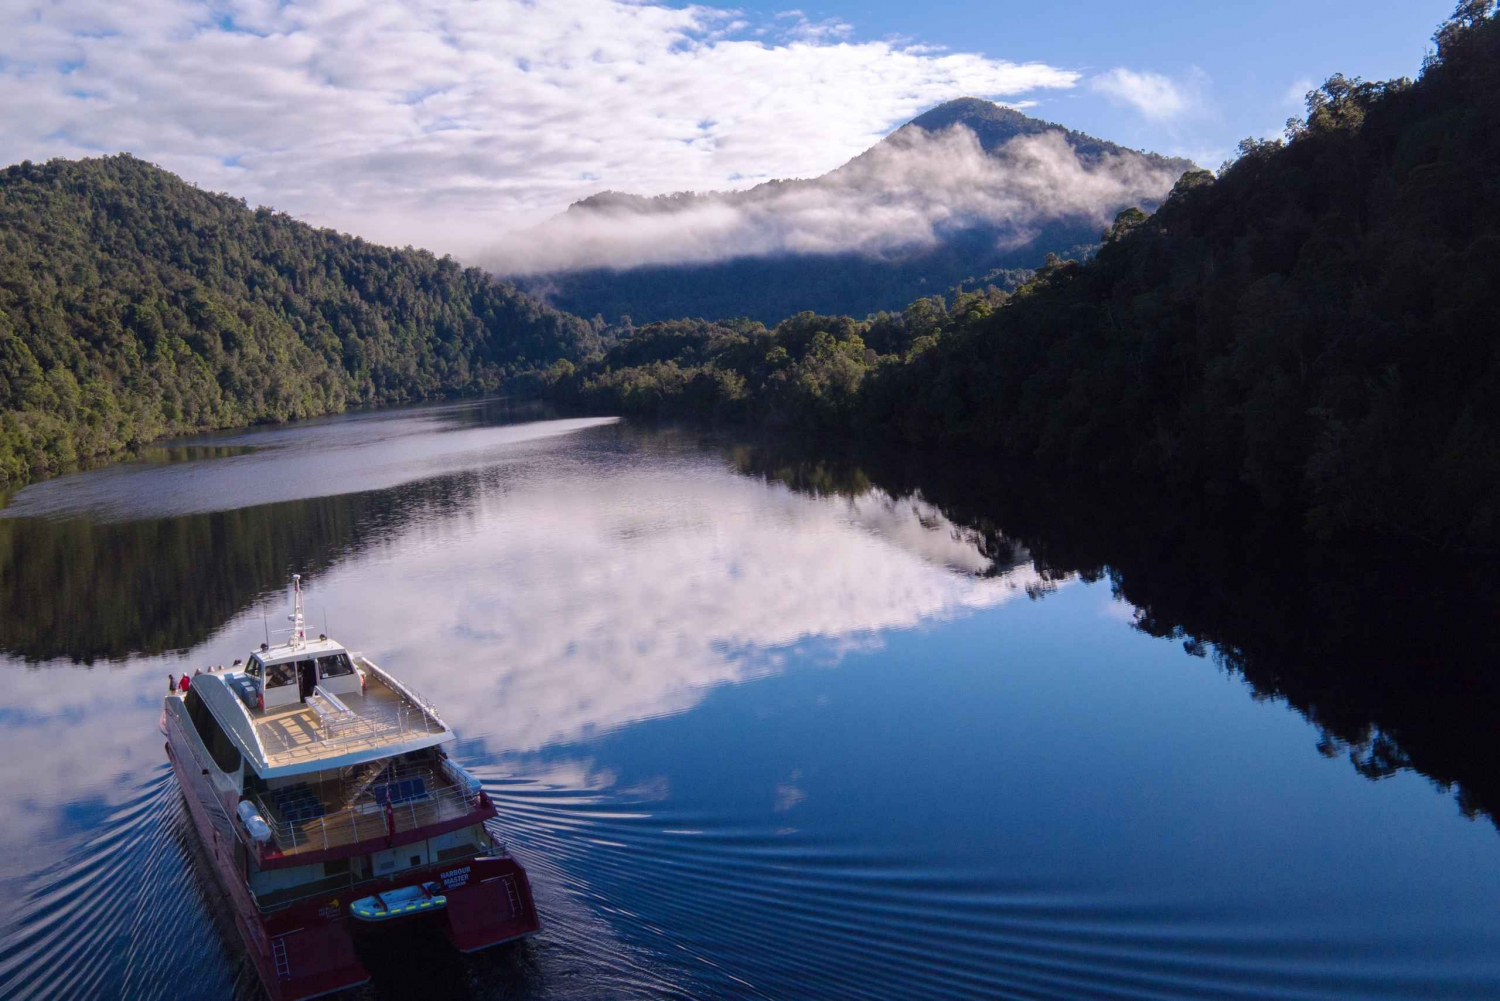 Gordon River Afternoon Cruise with Buffet Dinner